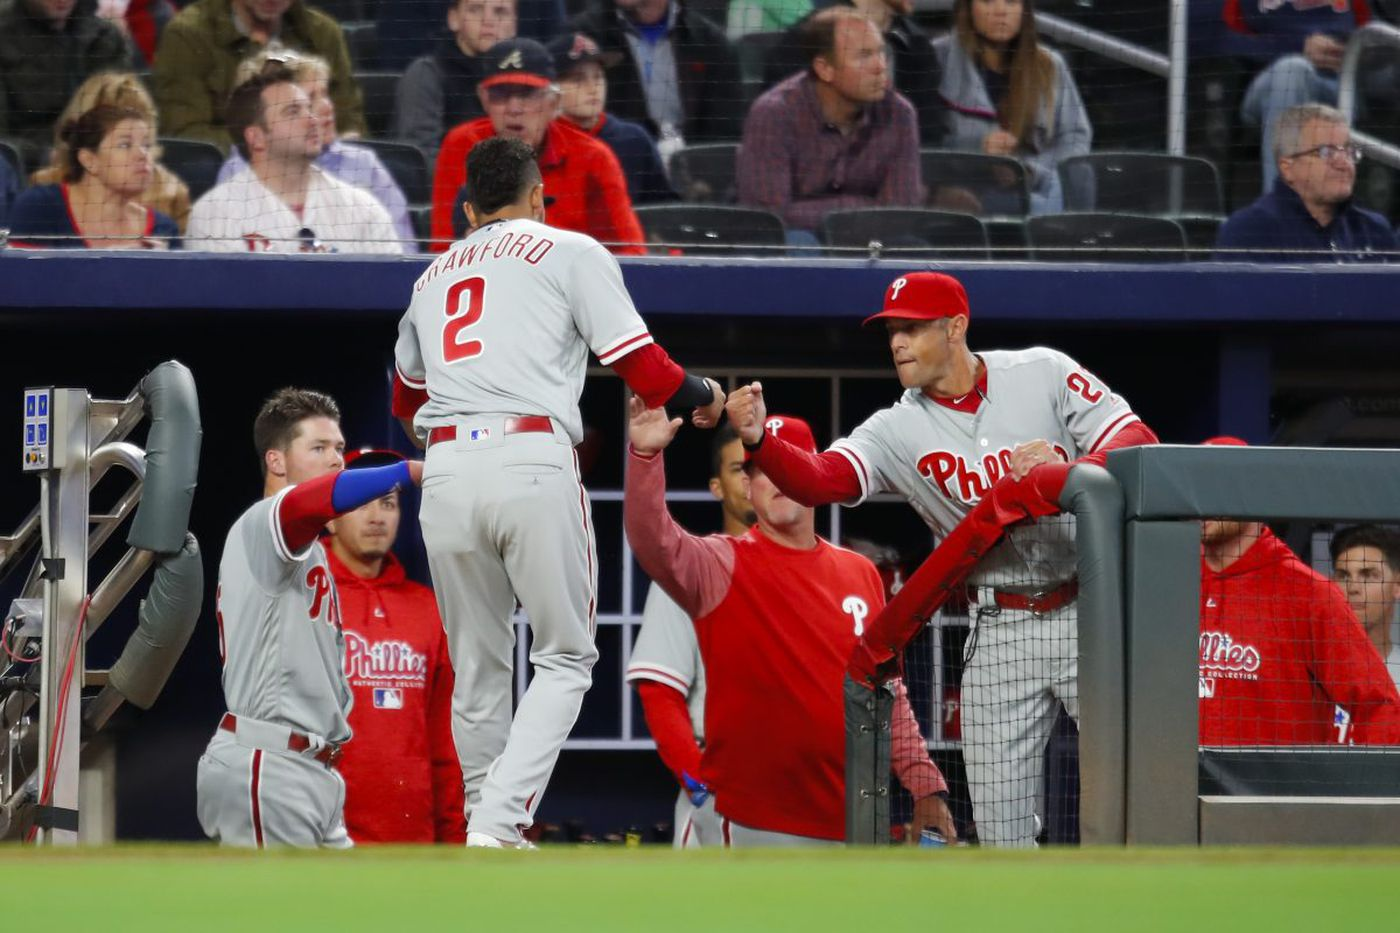 Gabe Kapler's bullpen usage with Phillies is becoming a soap opera